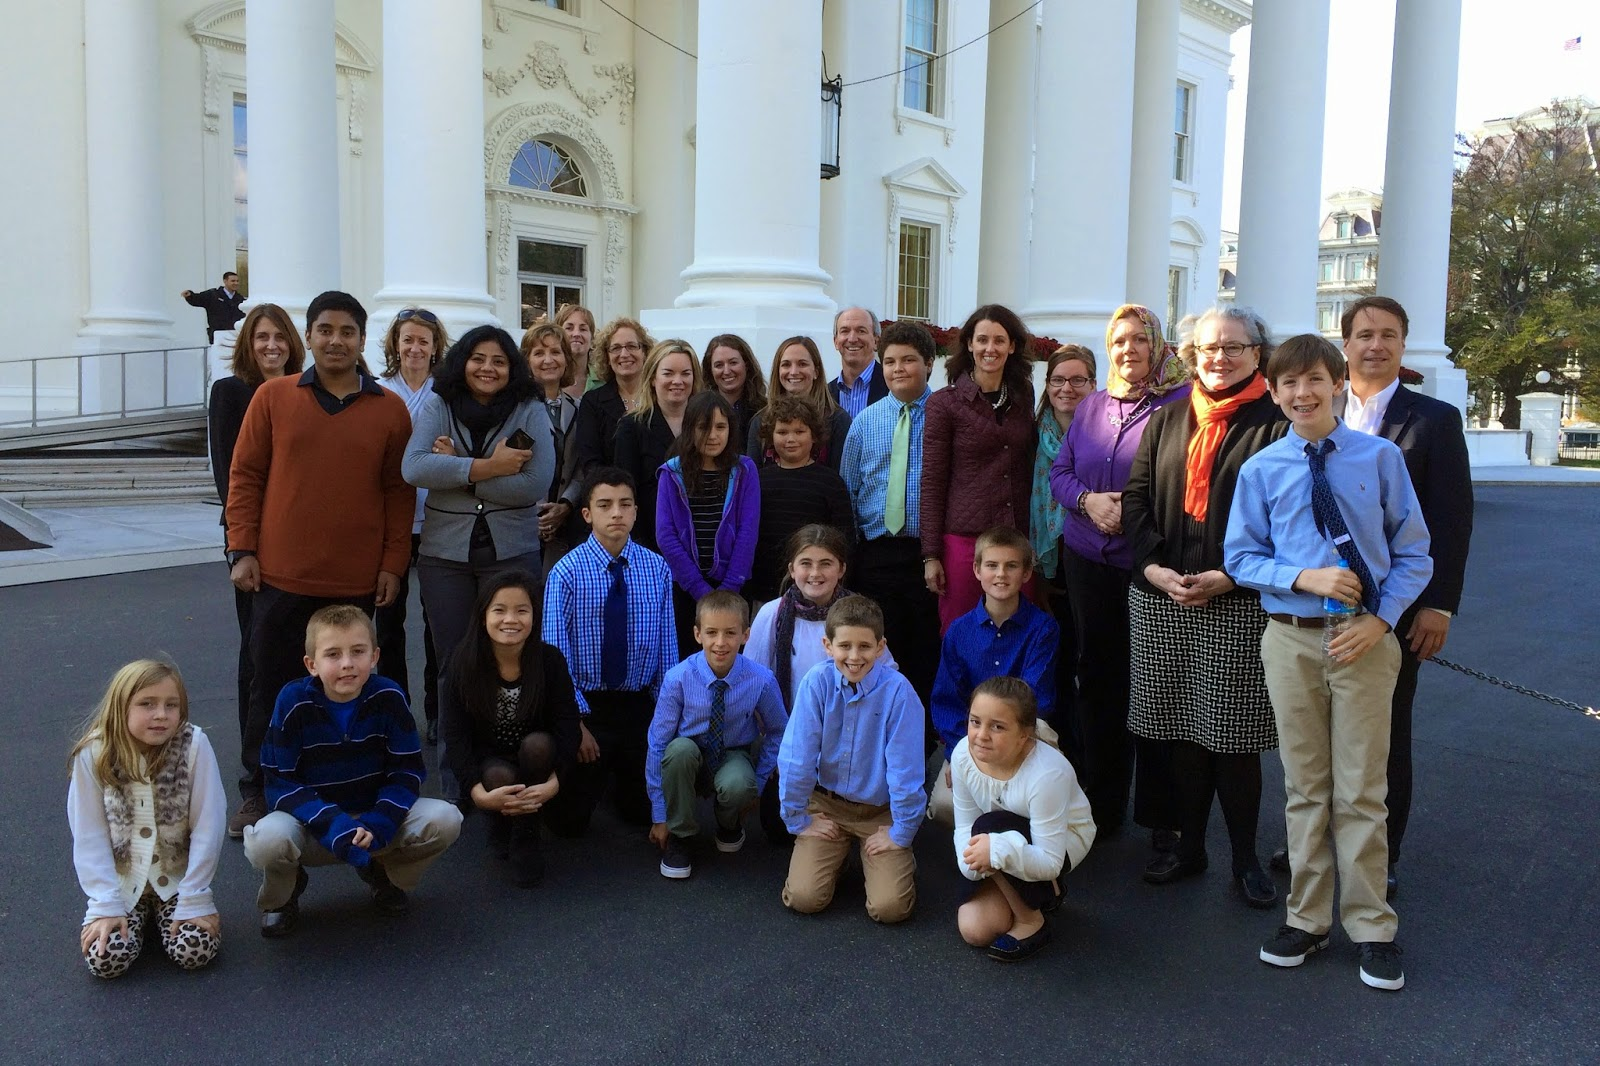 Hockomock YMCA Healthy Futures group outside the White House